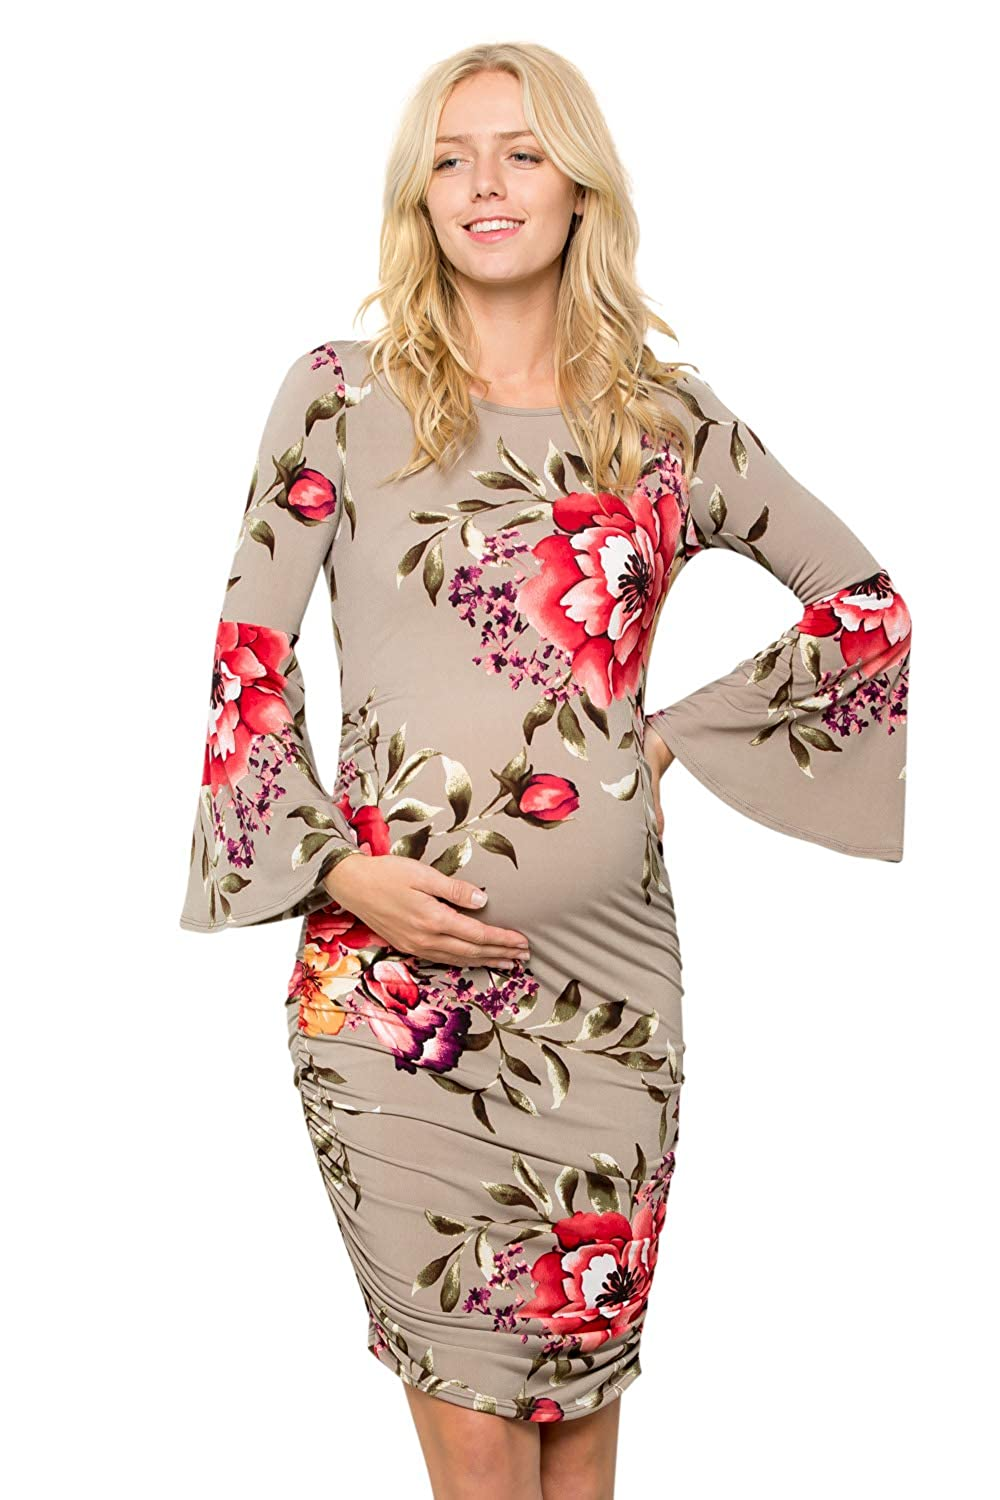 My Bump DRESS レディース B07HRDLY47 Medium Floral / Taupe Red Floral / Taupe Red Medium